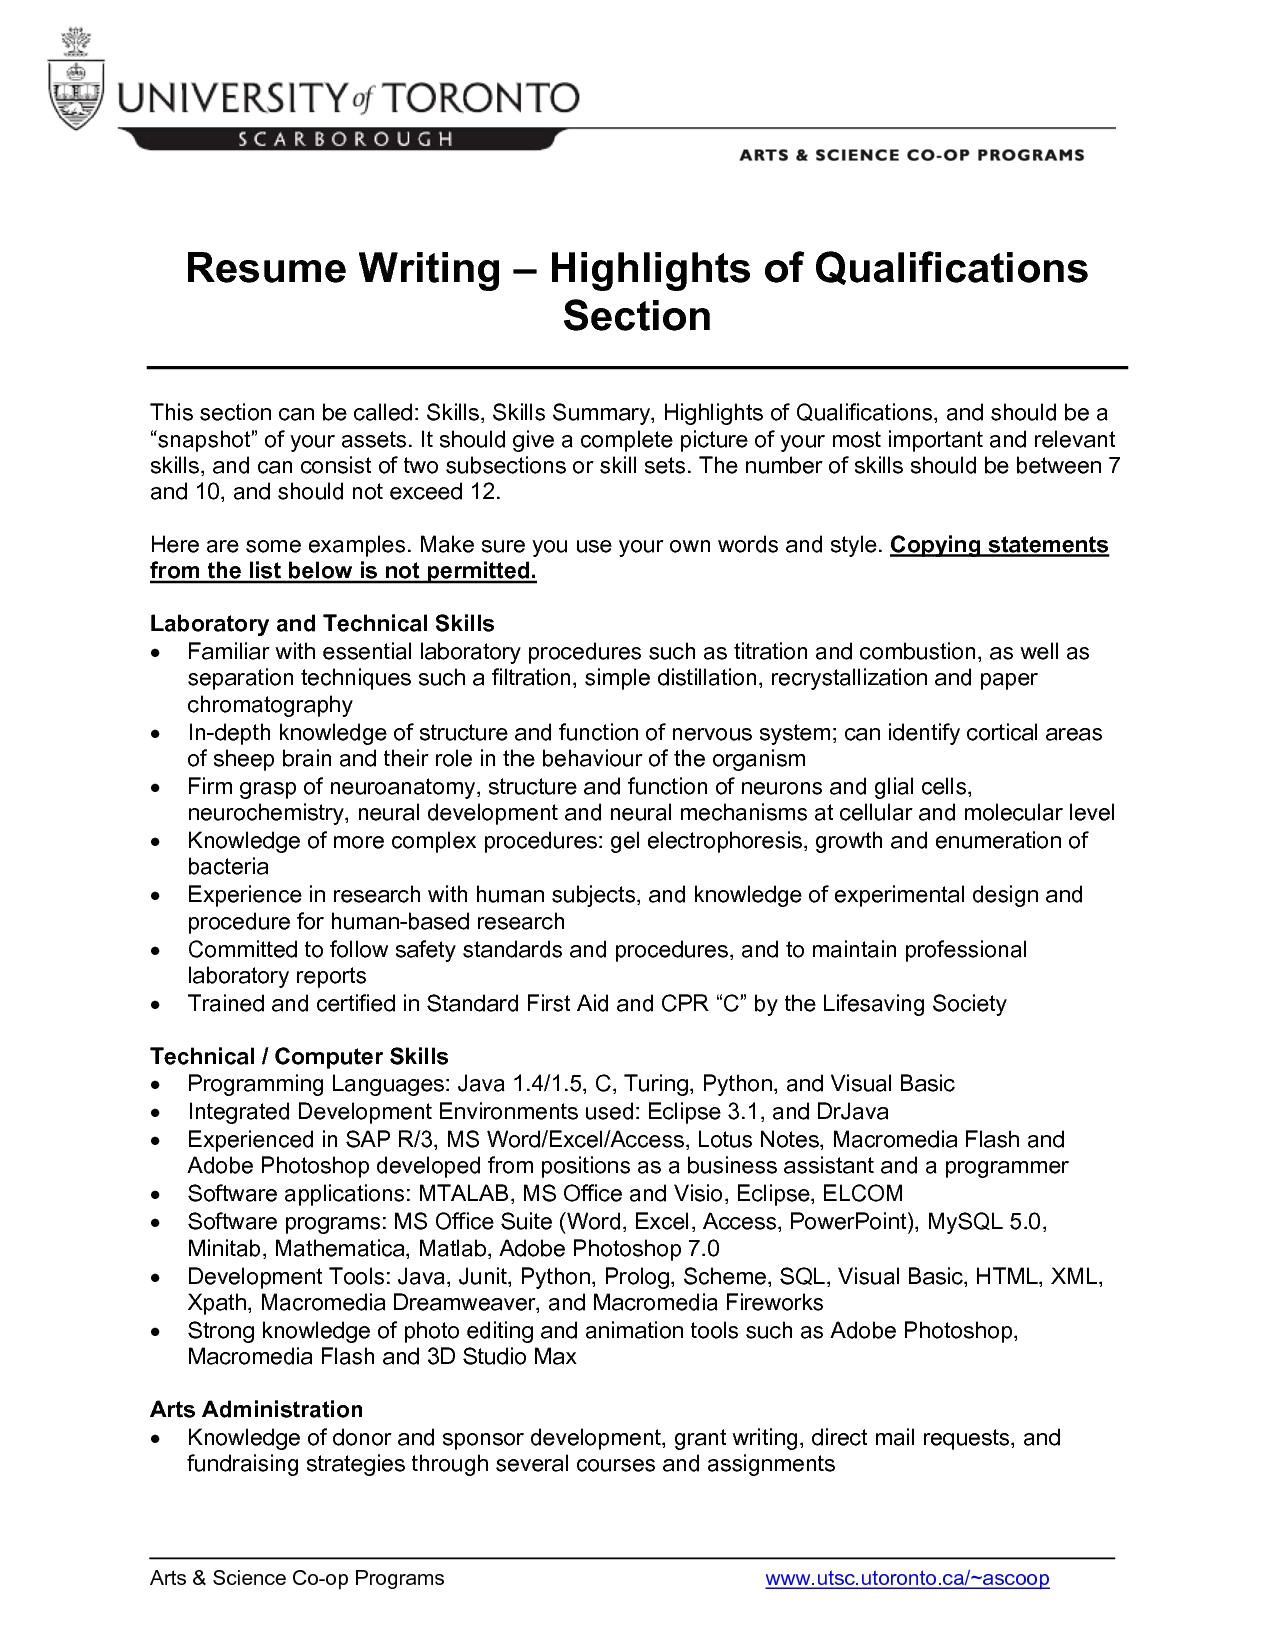 Profile Section Of Resume - 60 New Examples Resume Skills